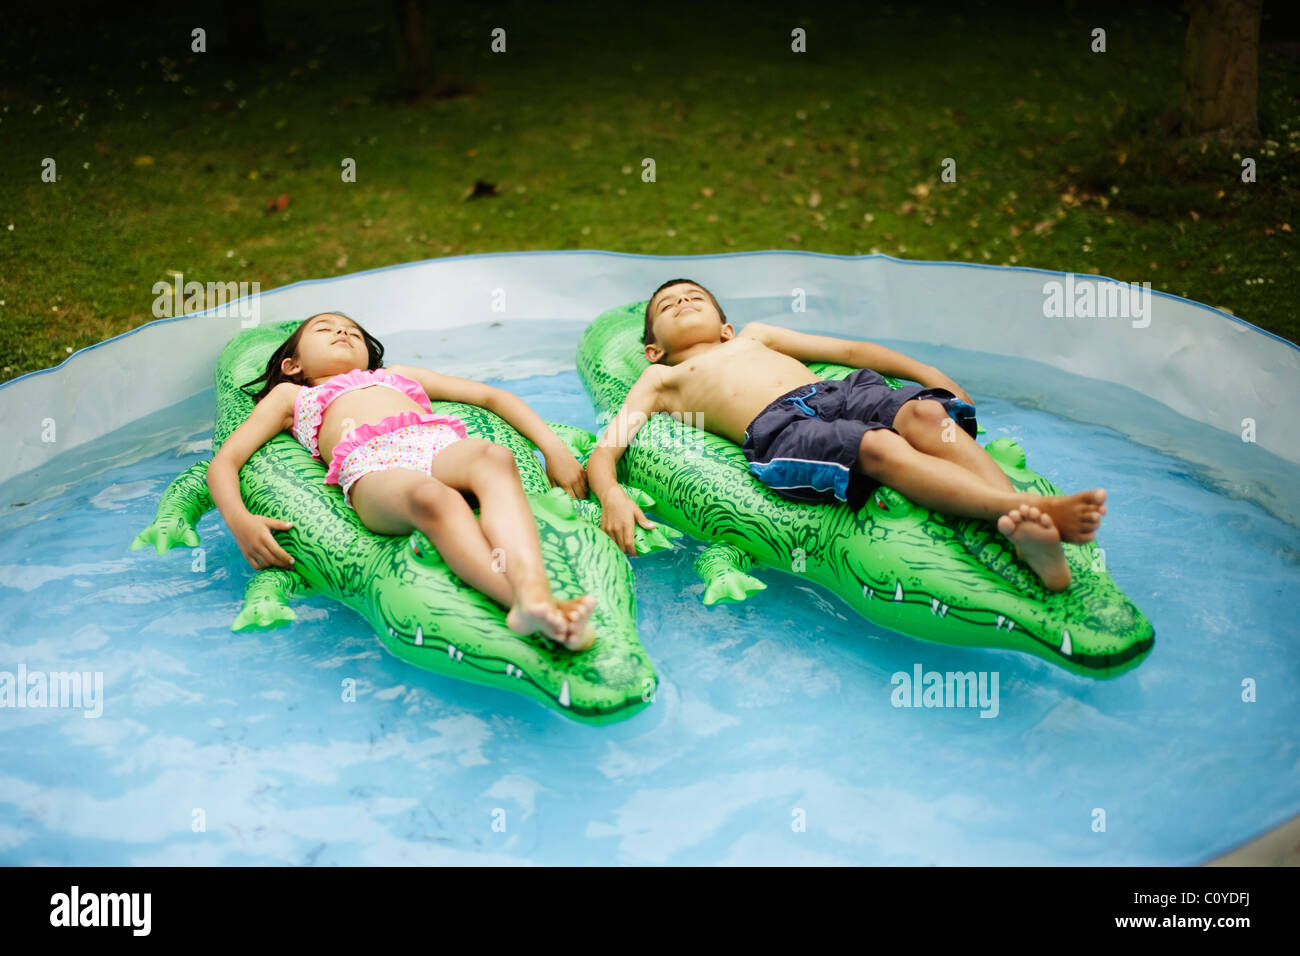 Boy and girl lie on inflatable crocodiles floating in paddling pool. - Stock Image